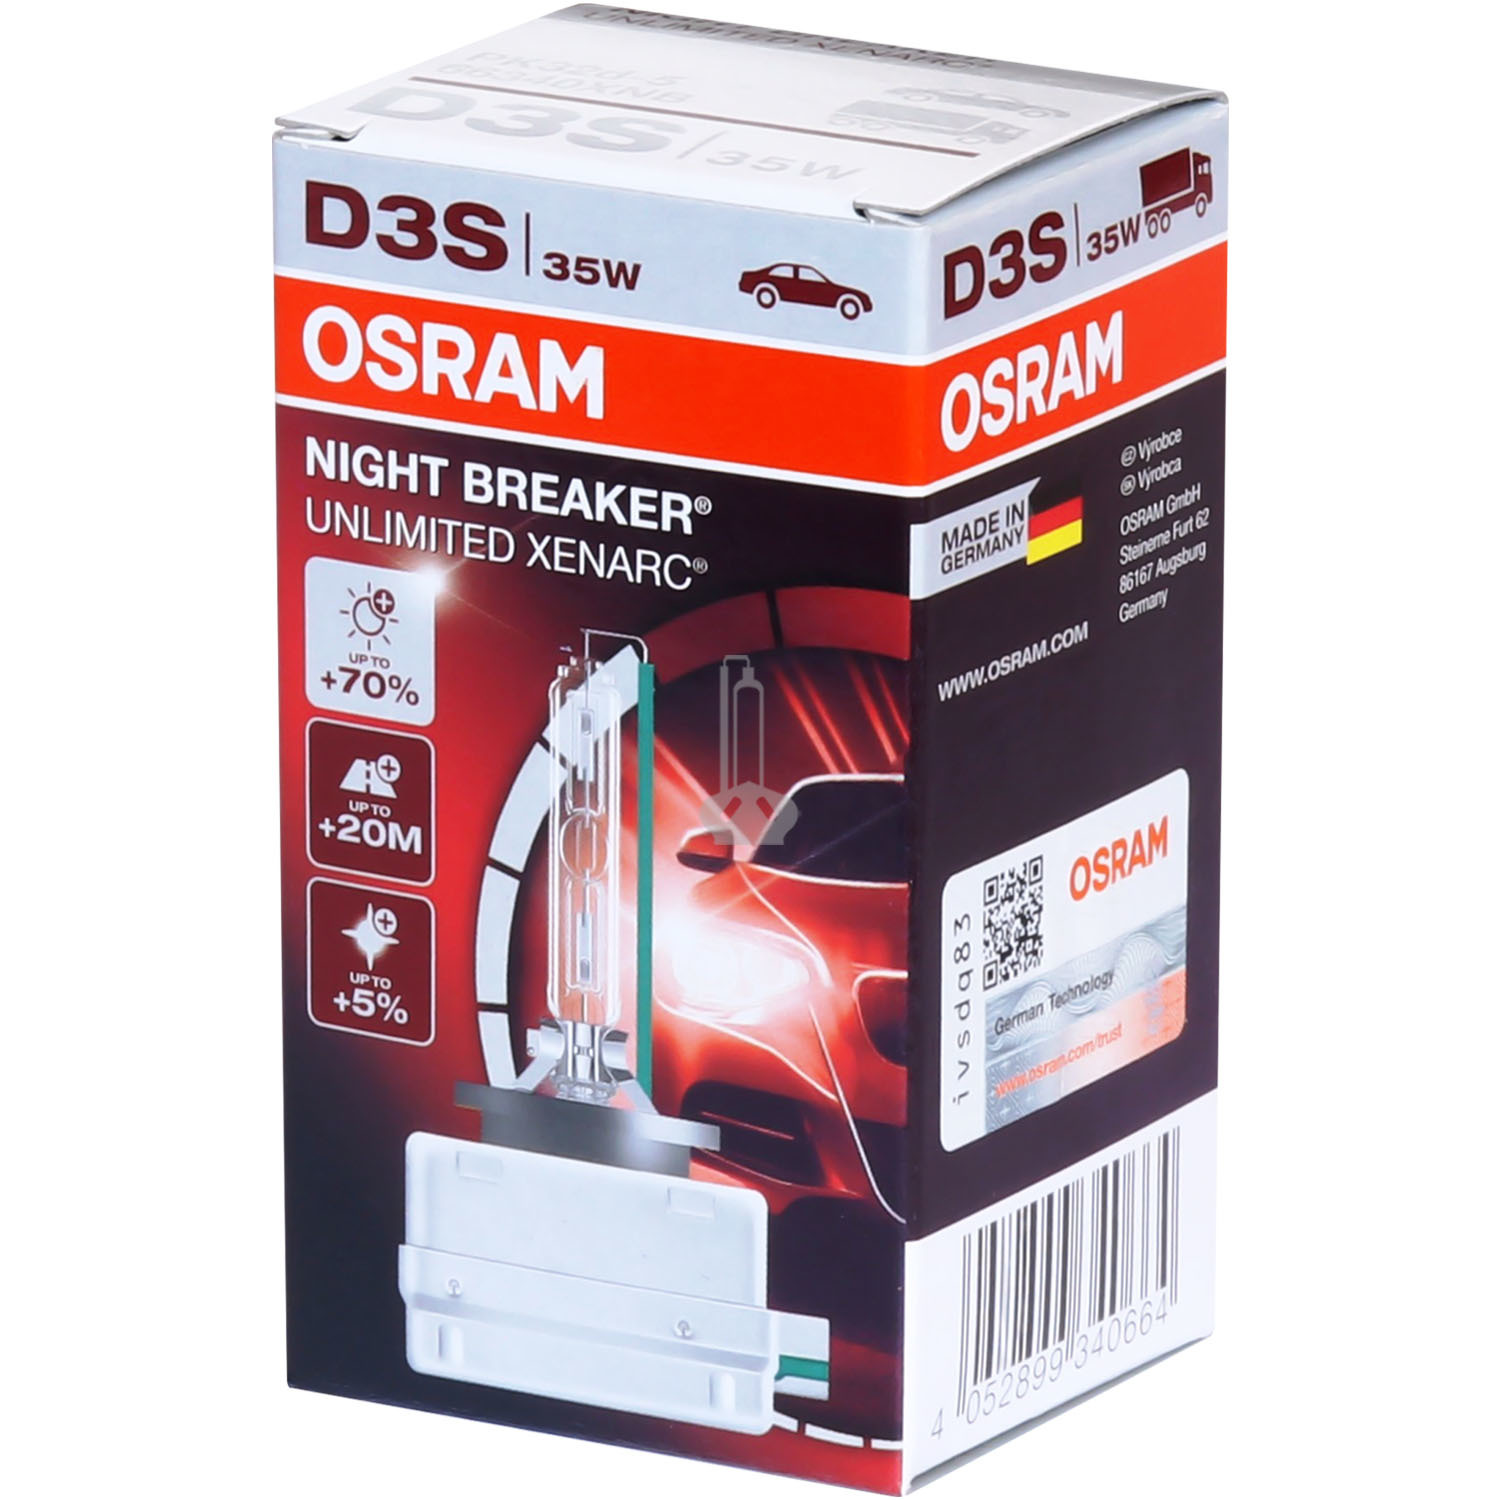 Ксеноновая лампа OSRAM D3S Xenarc NIGHT BREAKER UNLIMITED